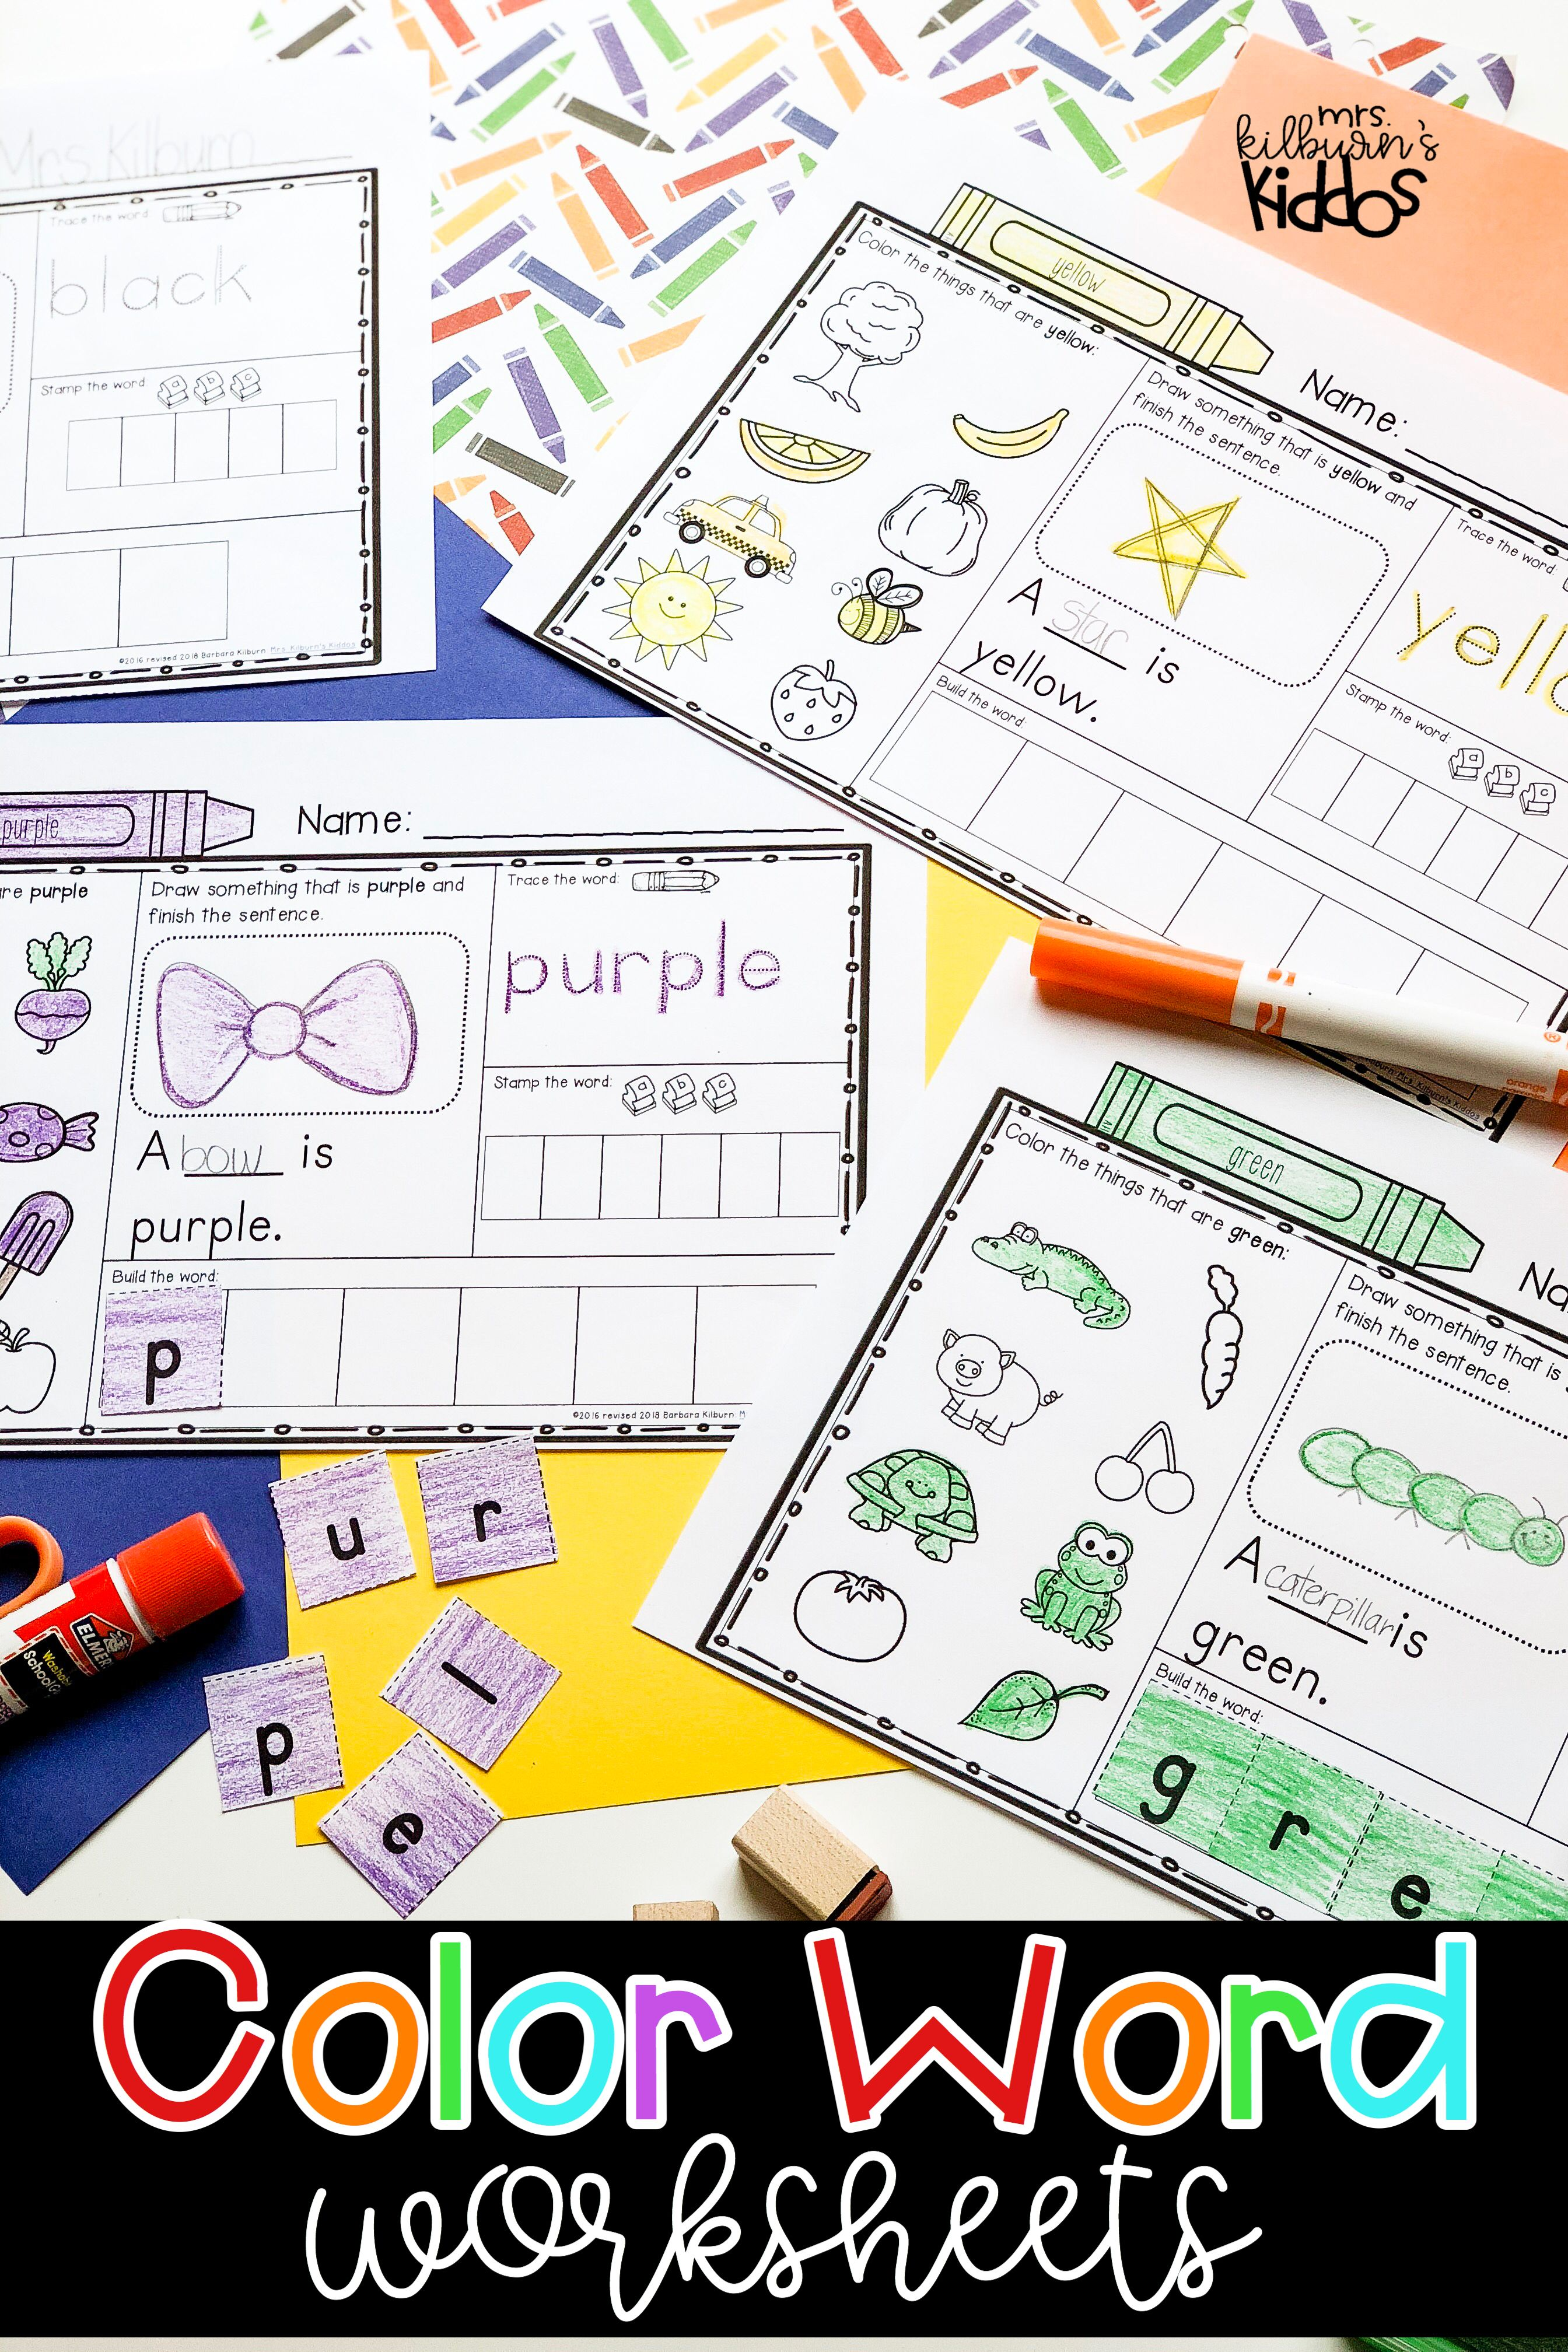 Color Word Worksheets | Hello Kindergarten | Kindergarten Colors